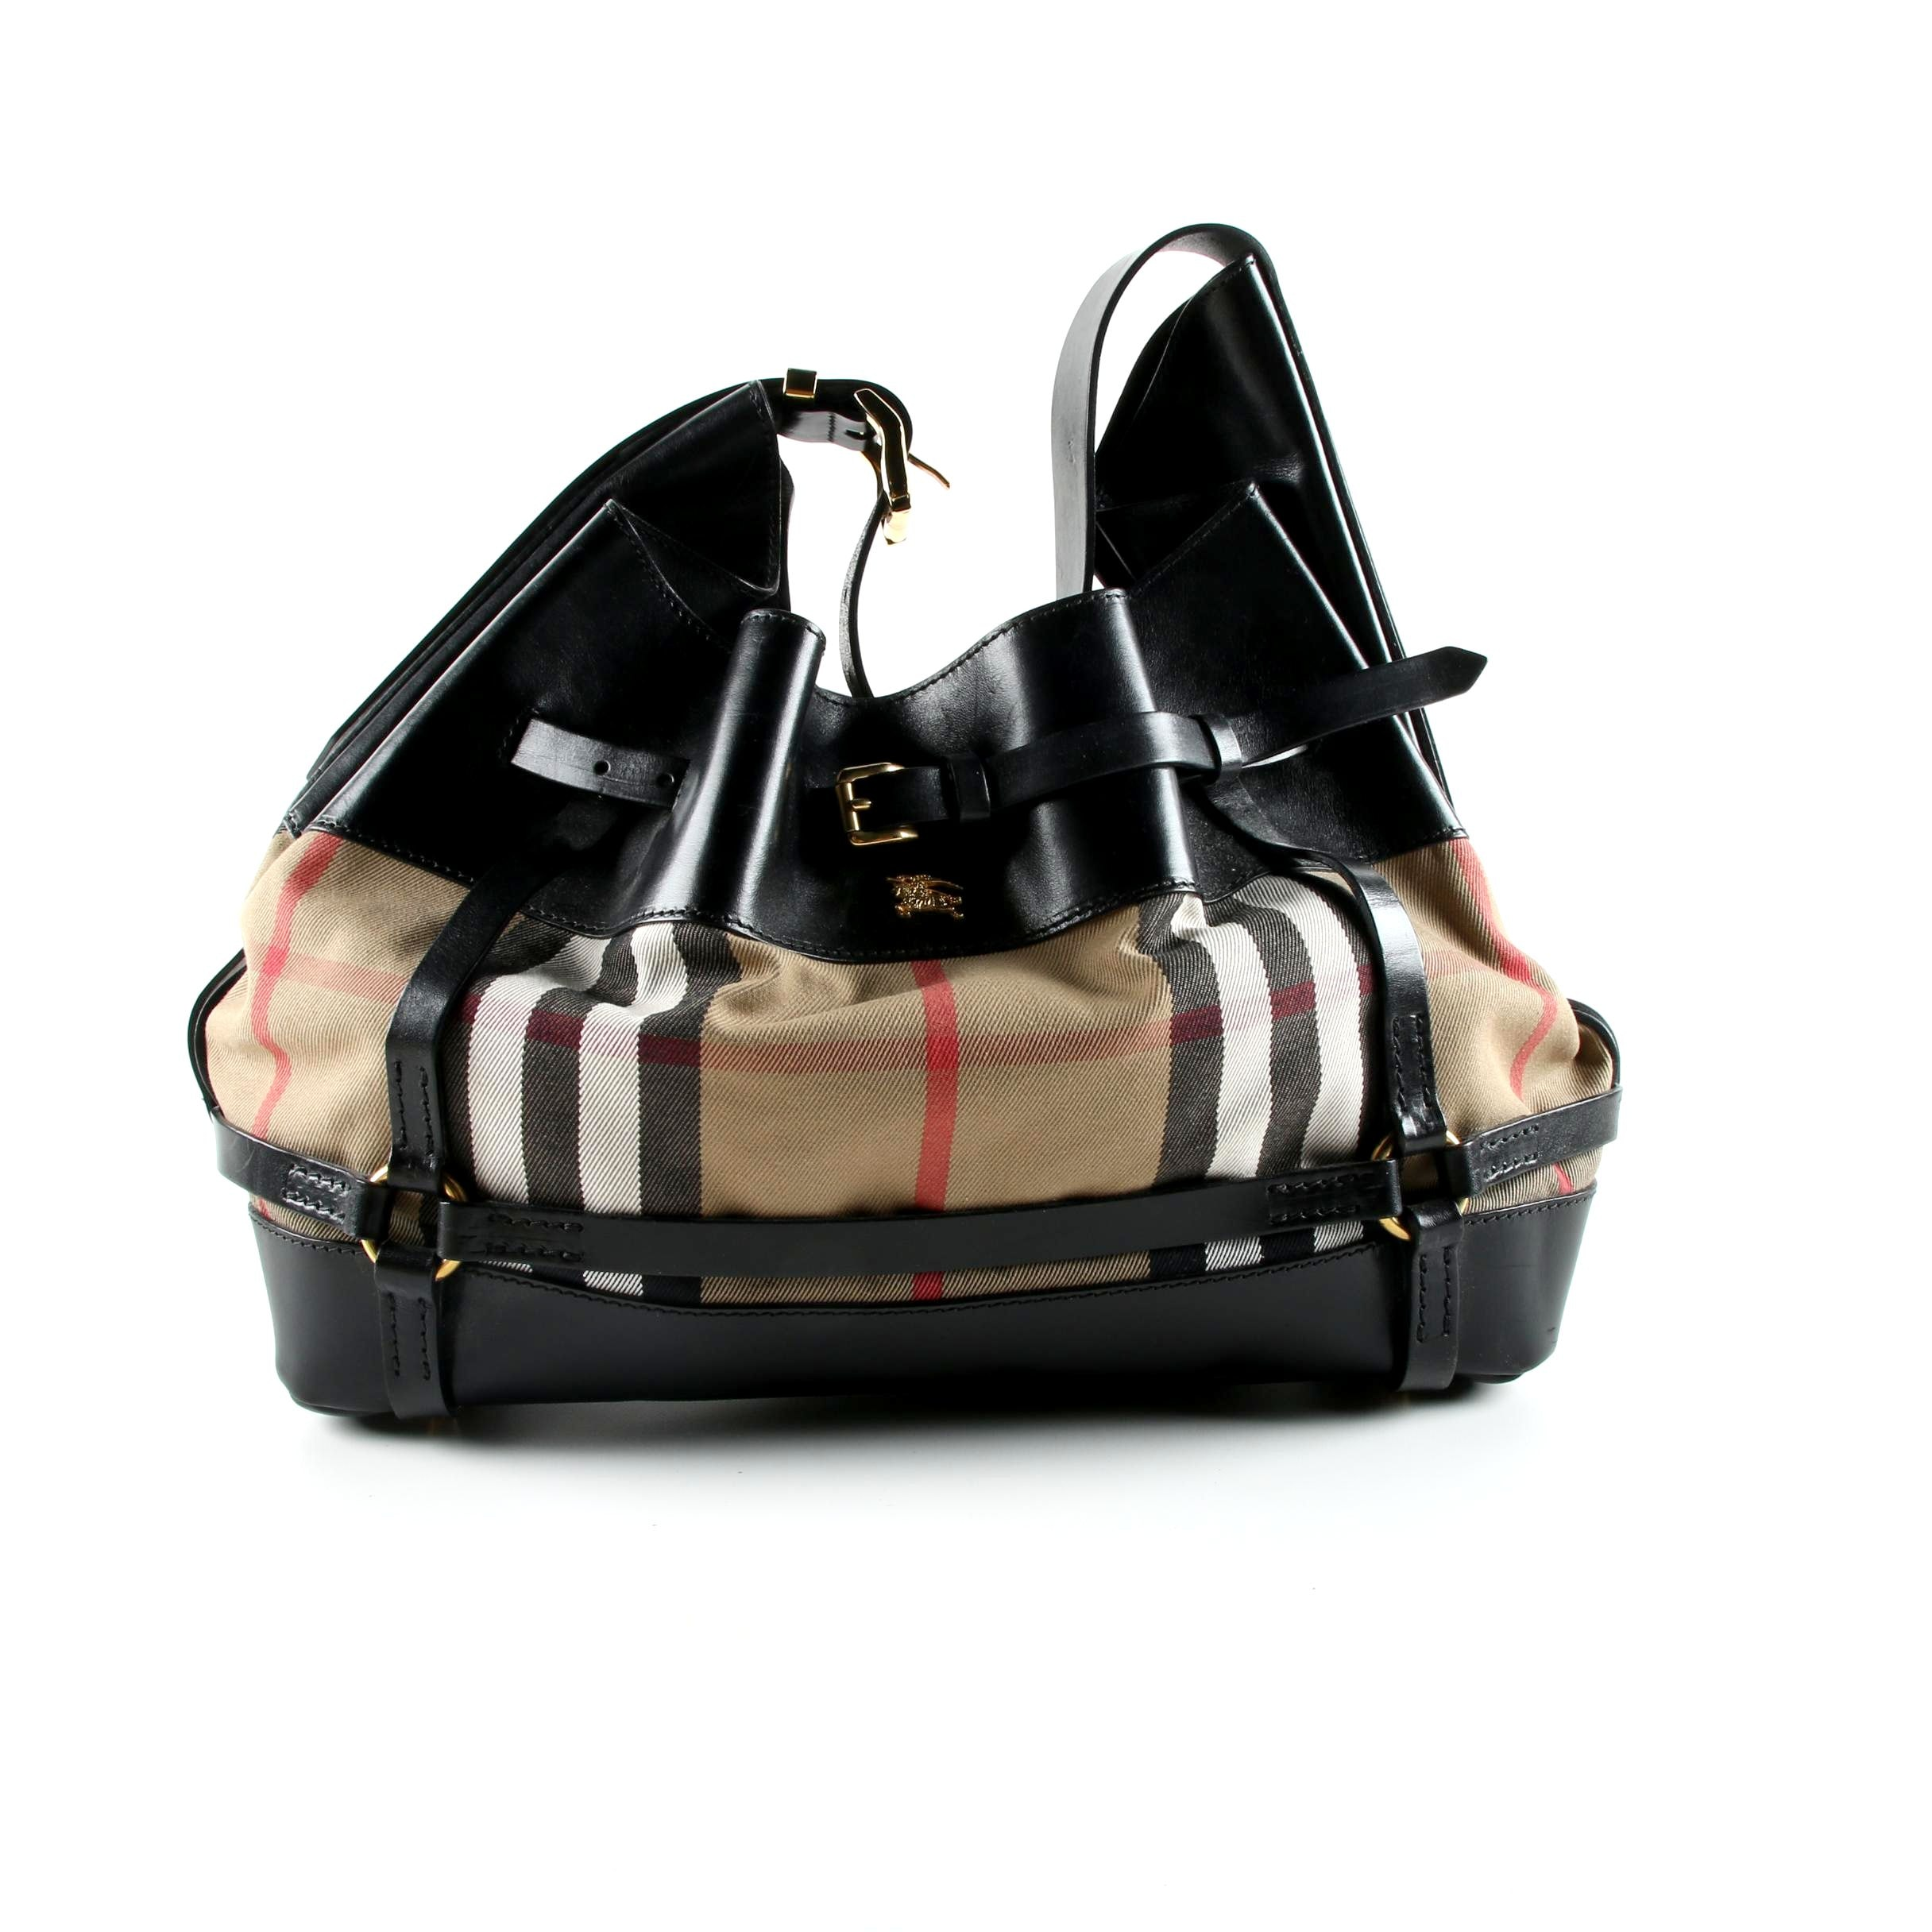 Burberry Black Leather and Plaid Canvas Hobo Bag